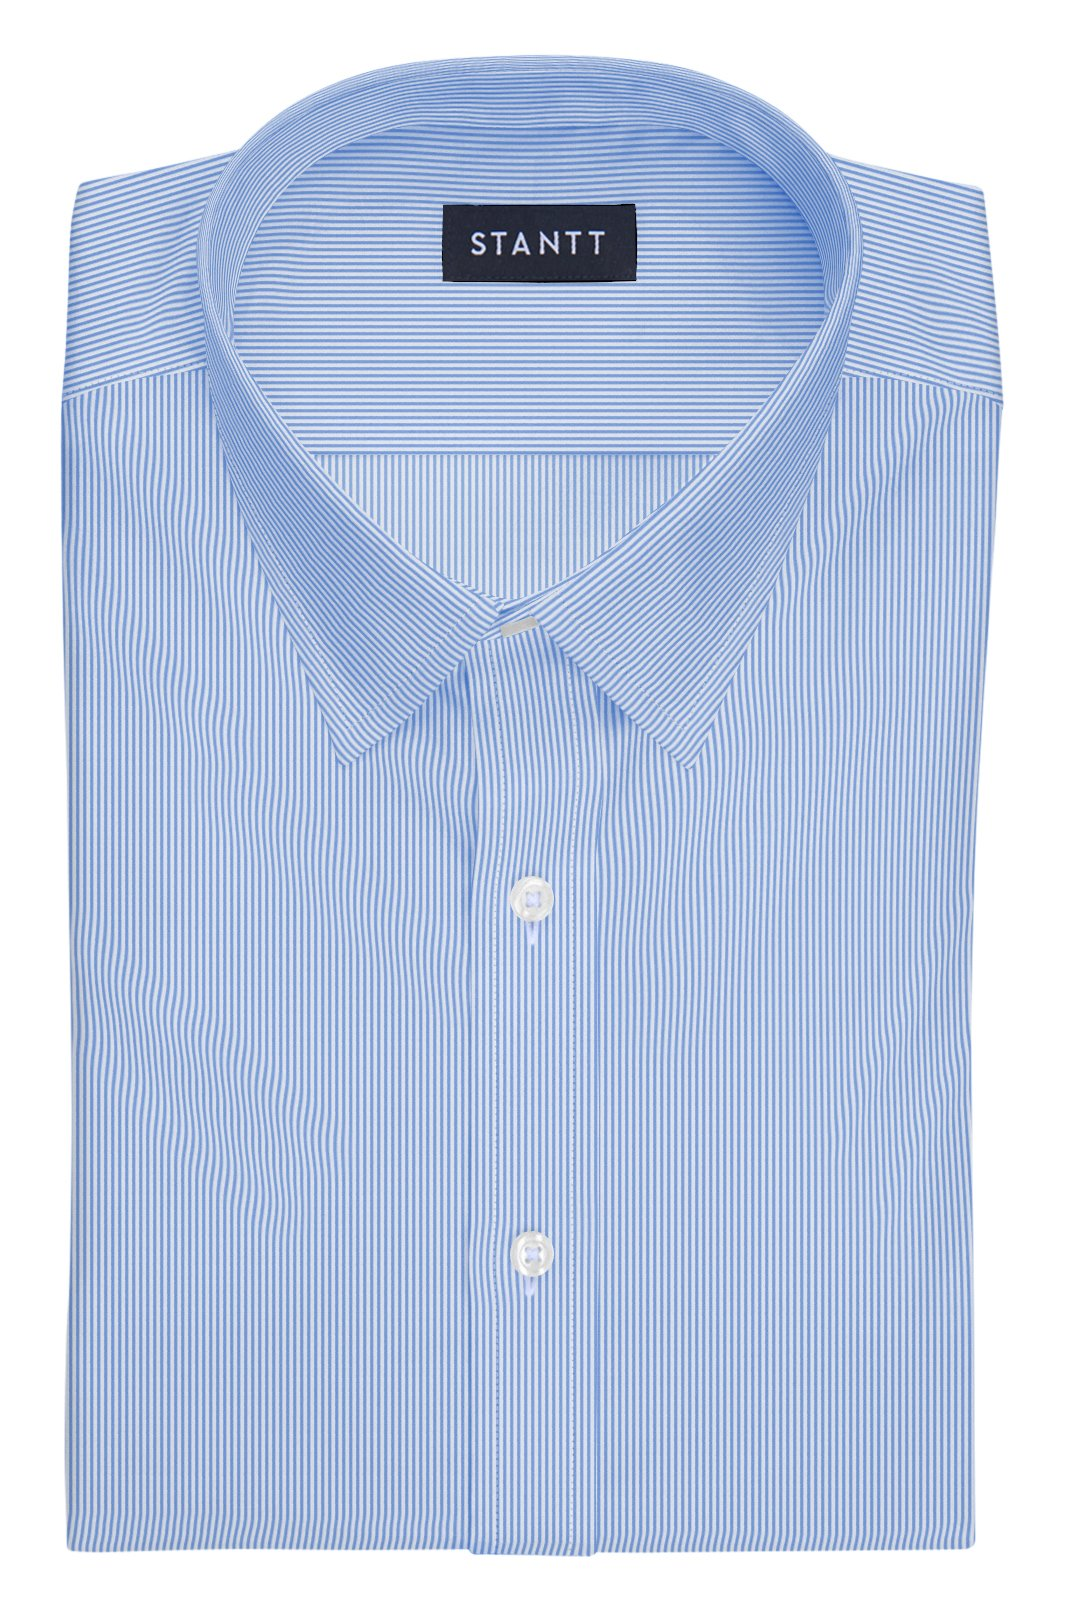 Blue Bengal Stripe: Semi-Spread Collar, Barrel Cuff